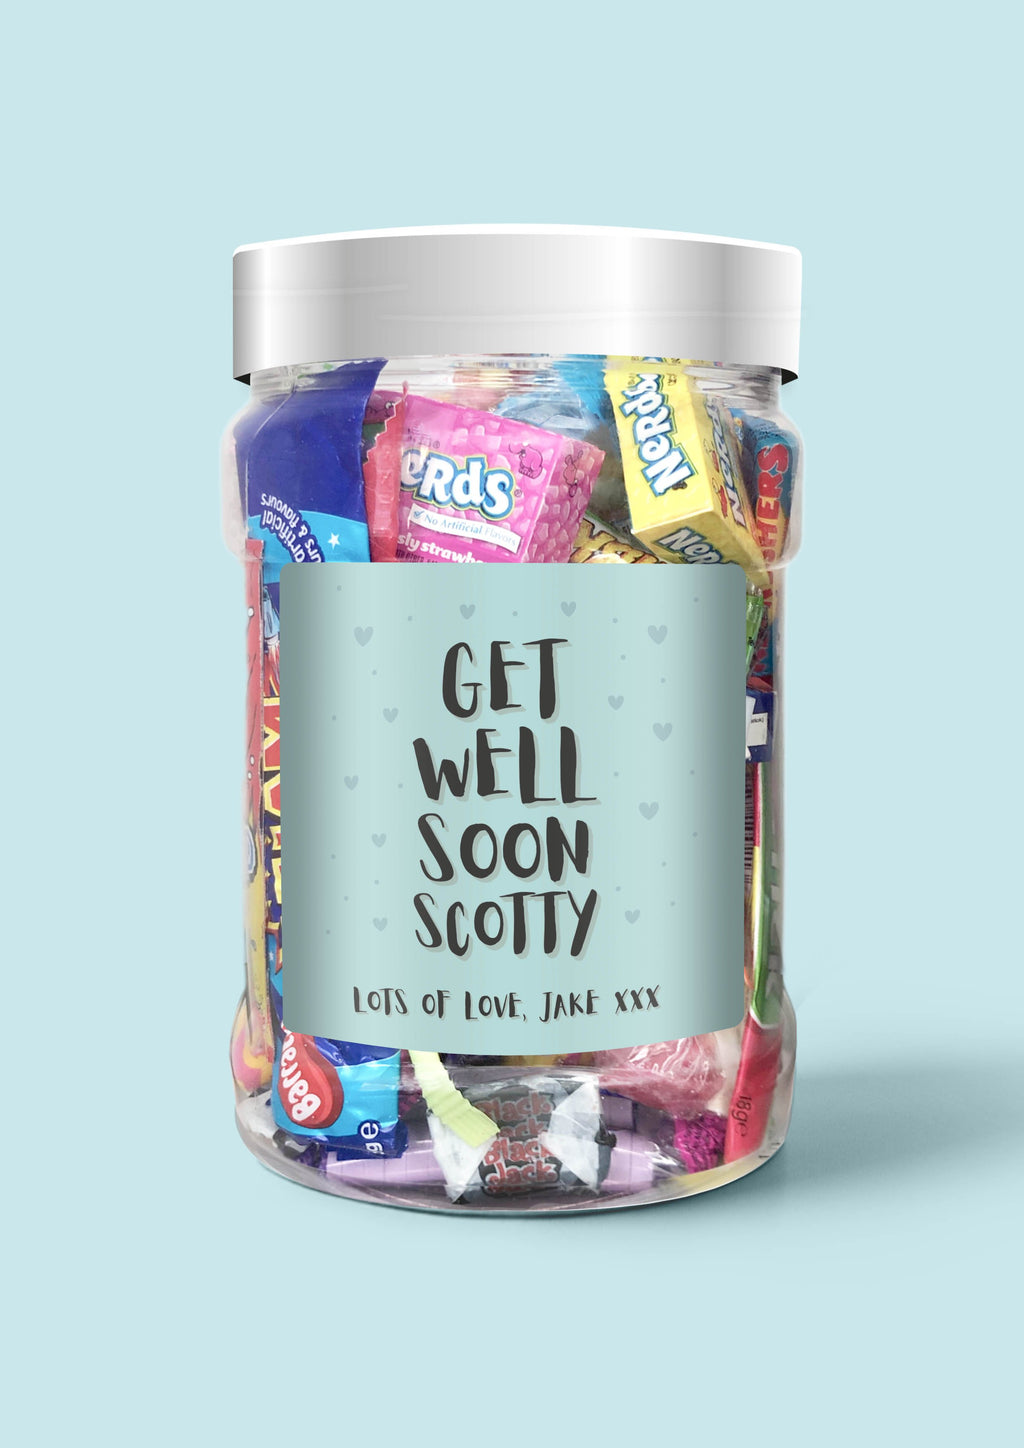 Get Well Soon - Sweet Dreams Candy Ltd